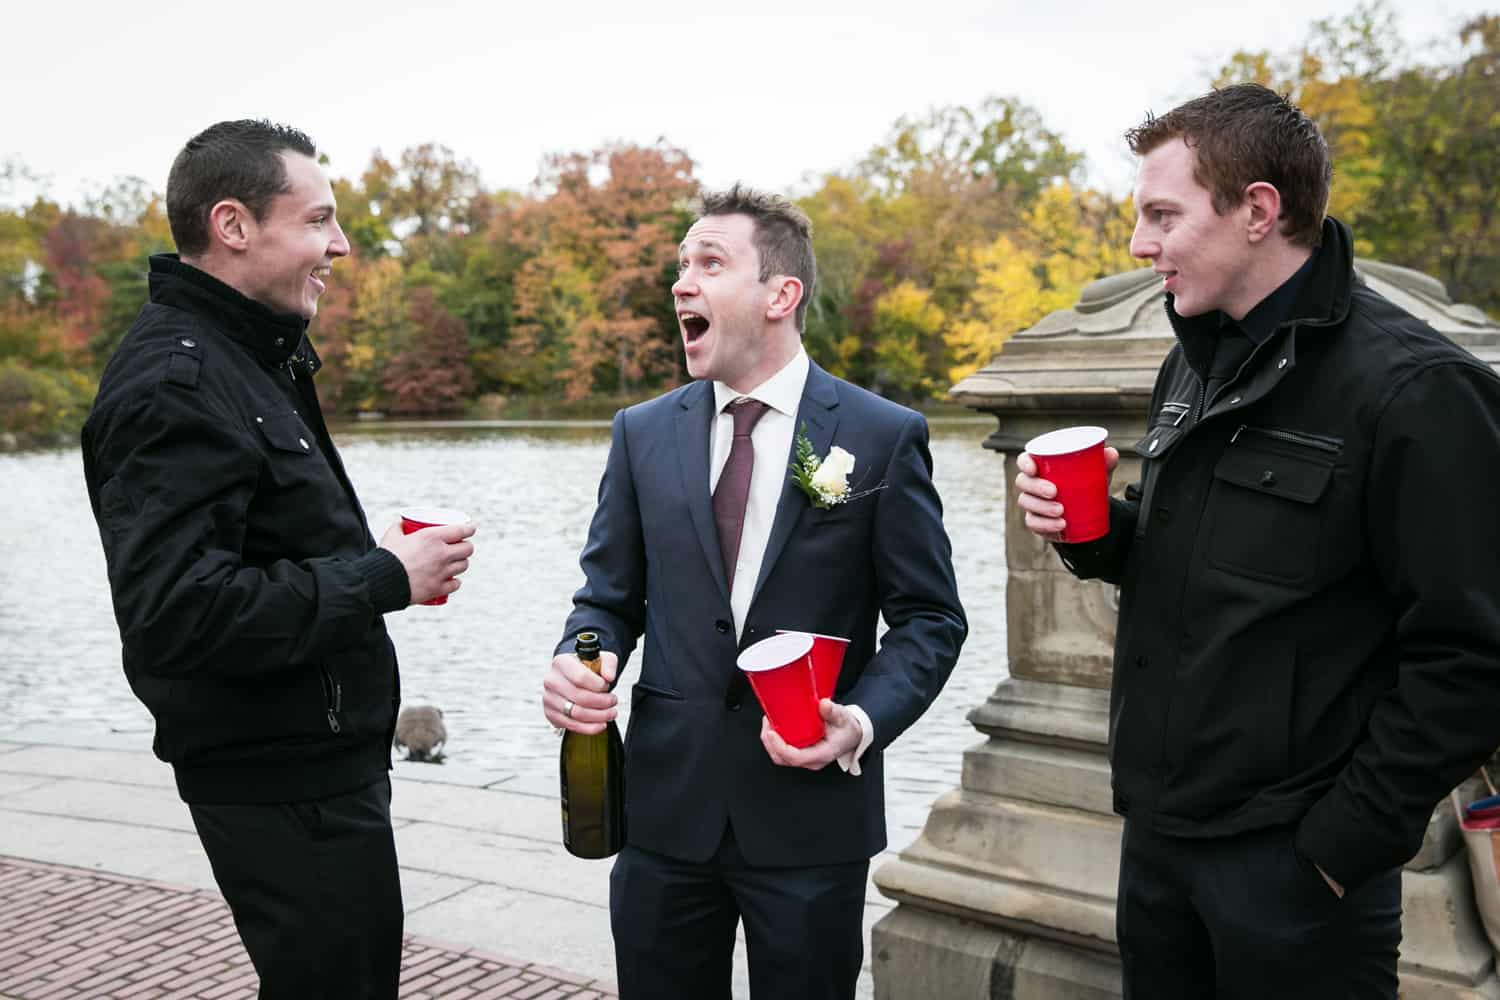 Groom celebrating with two male guests at a Bethesda Fountain wedding in Central Park